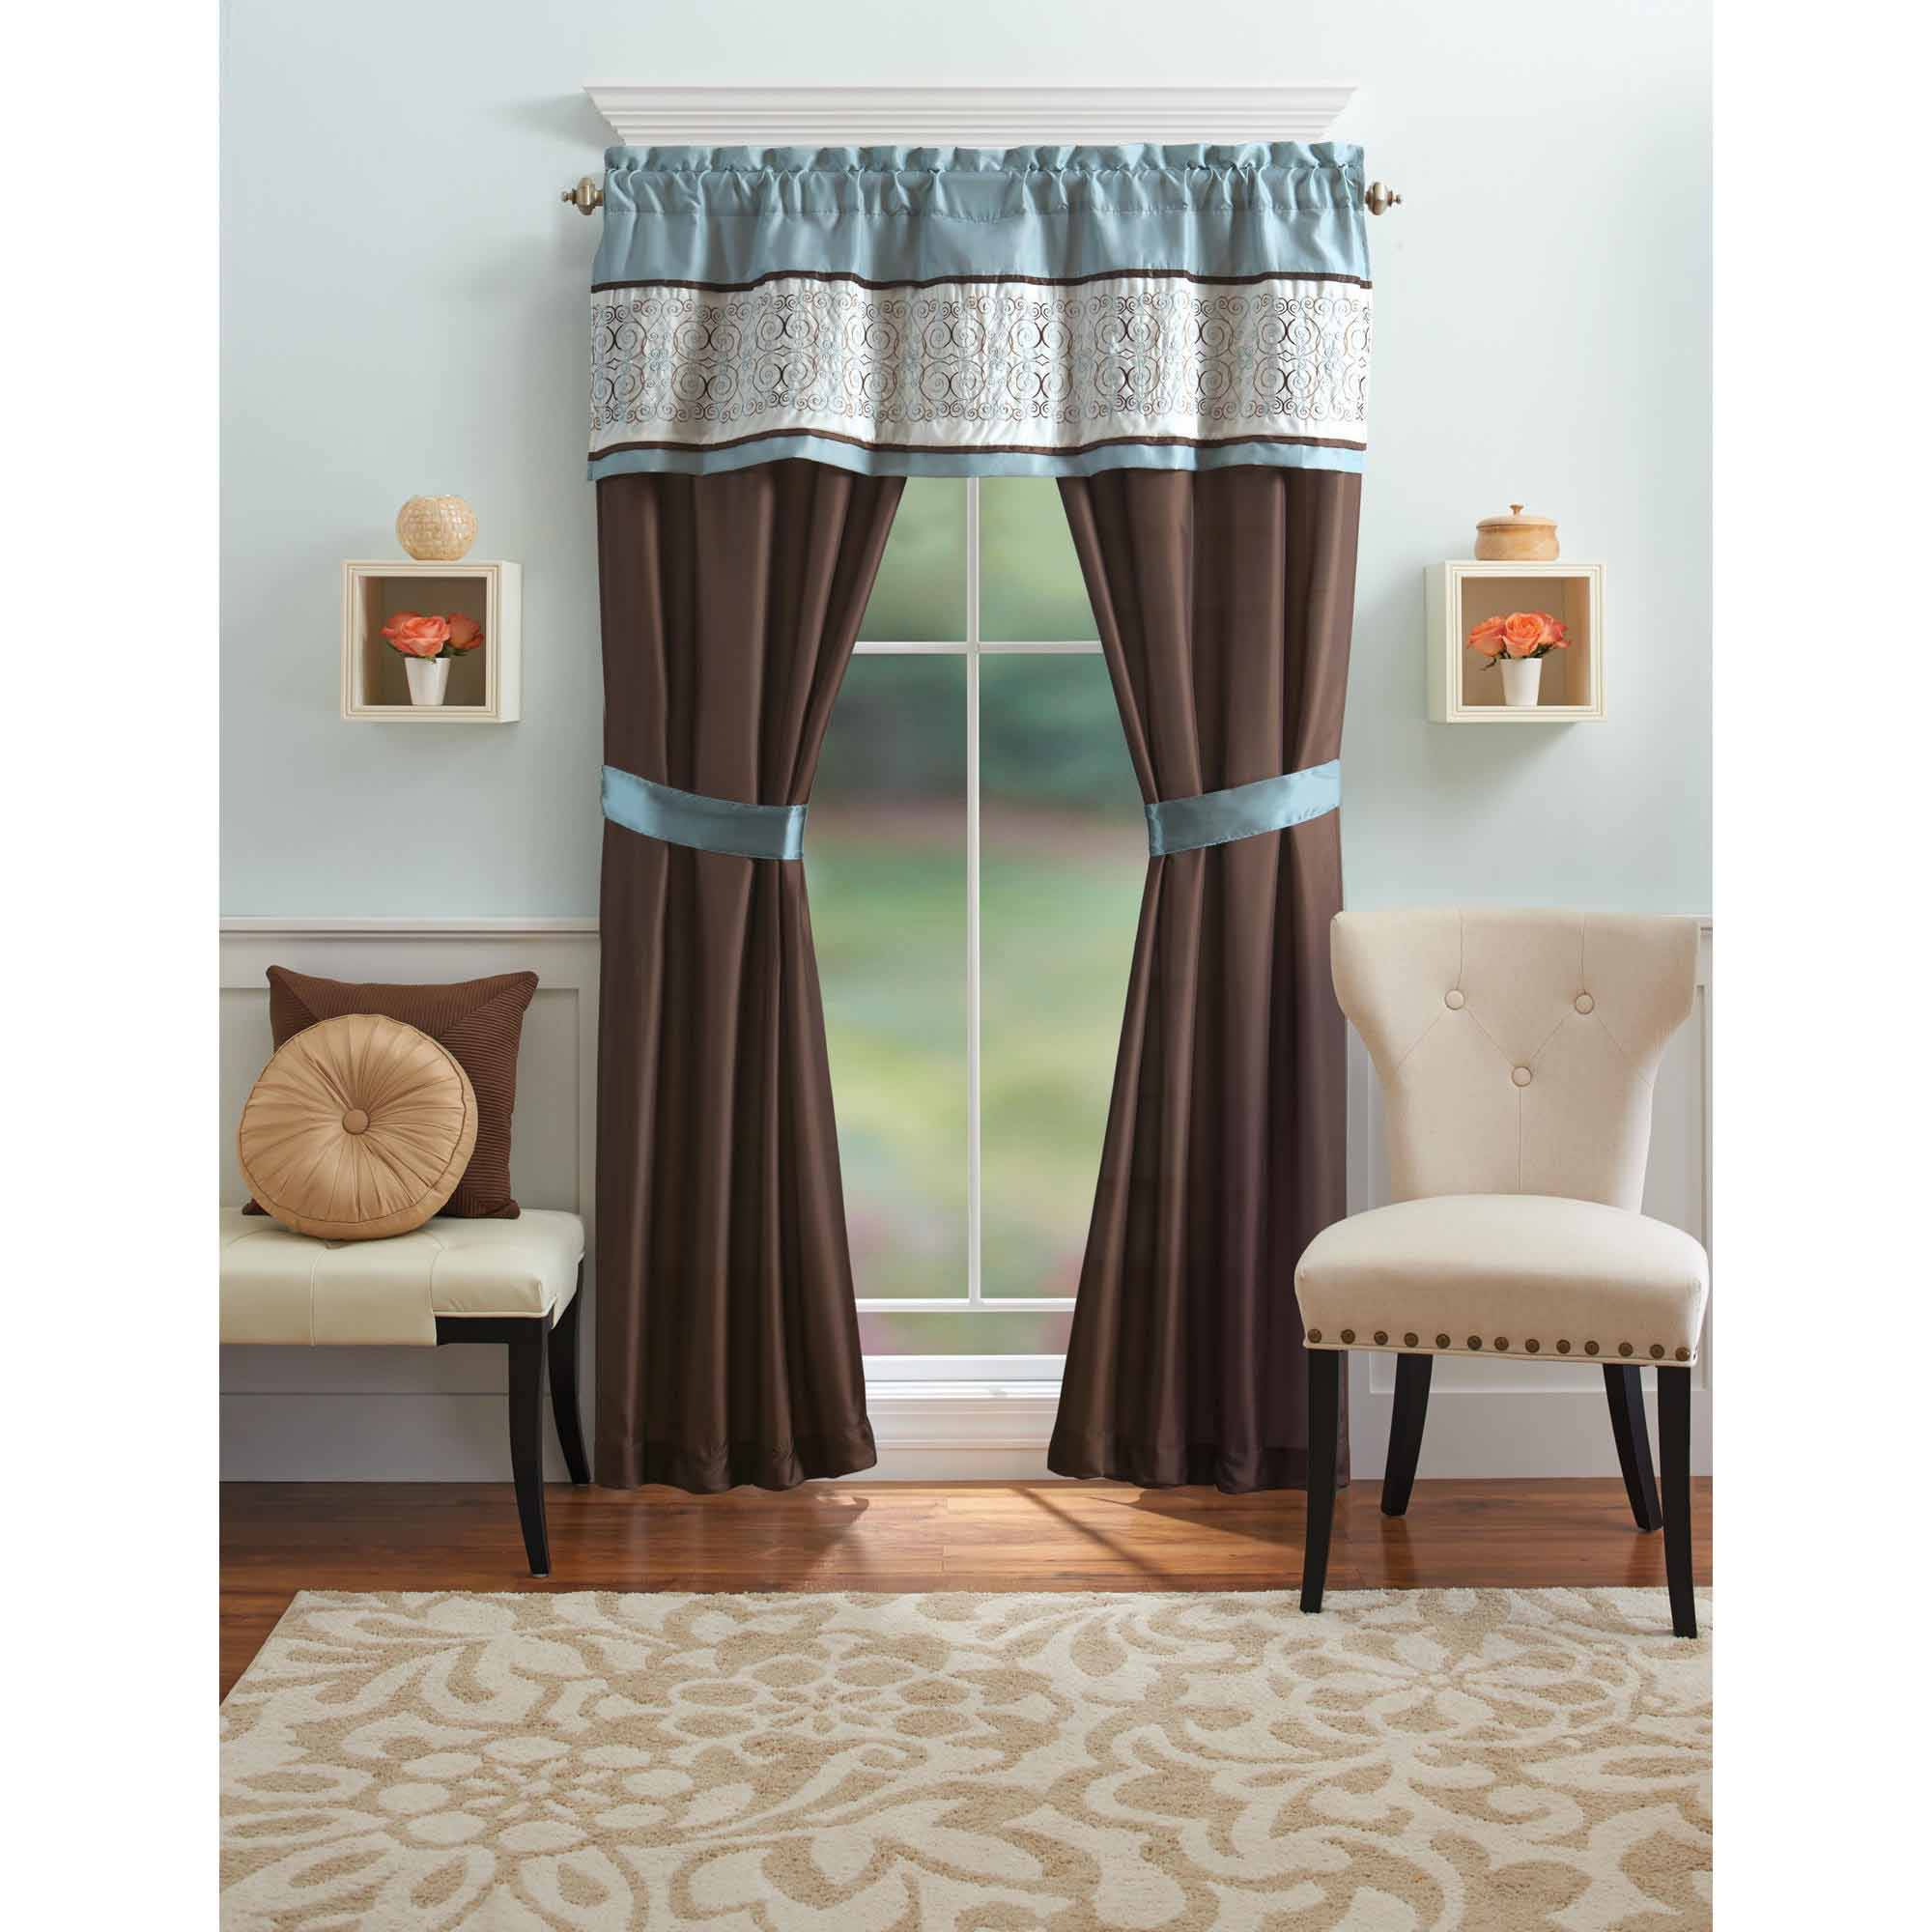 Better Homes And Gardens Blue Ombre Scroll 5 Piece Window Curtains Set, Curtain Panels And Valance Included For Ombre Embroidery Curtain Panels (View 16 of 20)